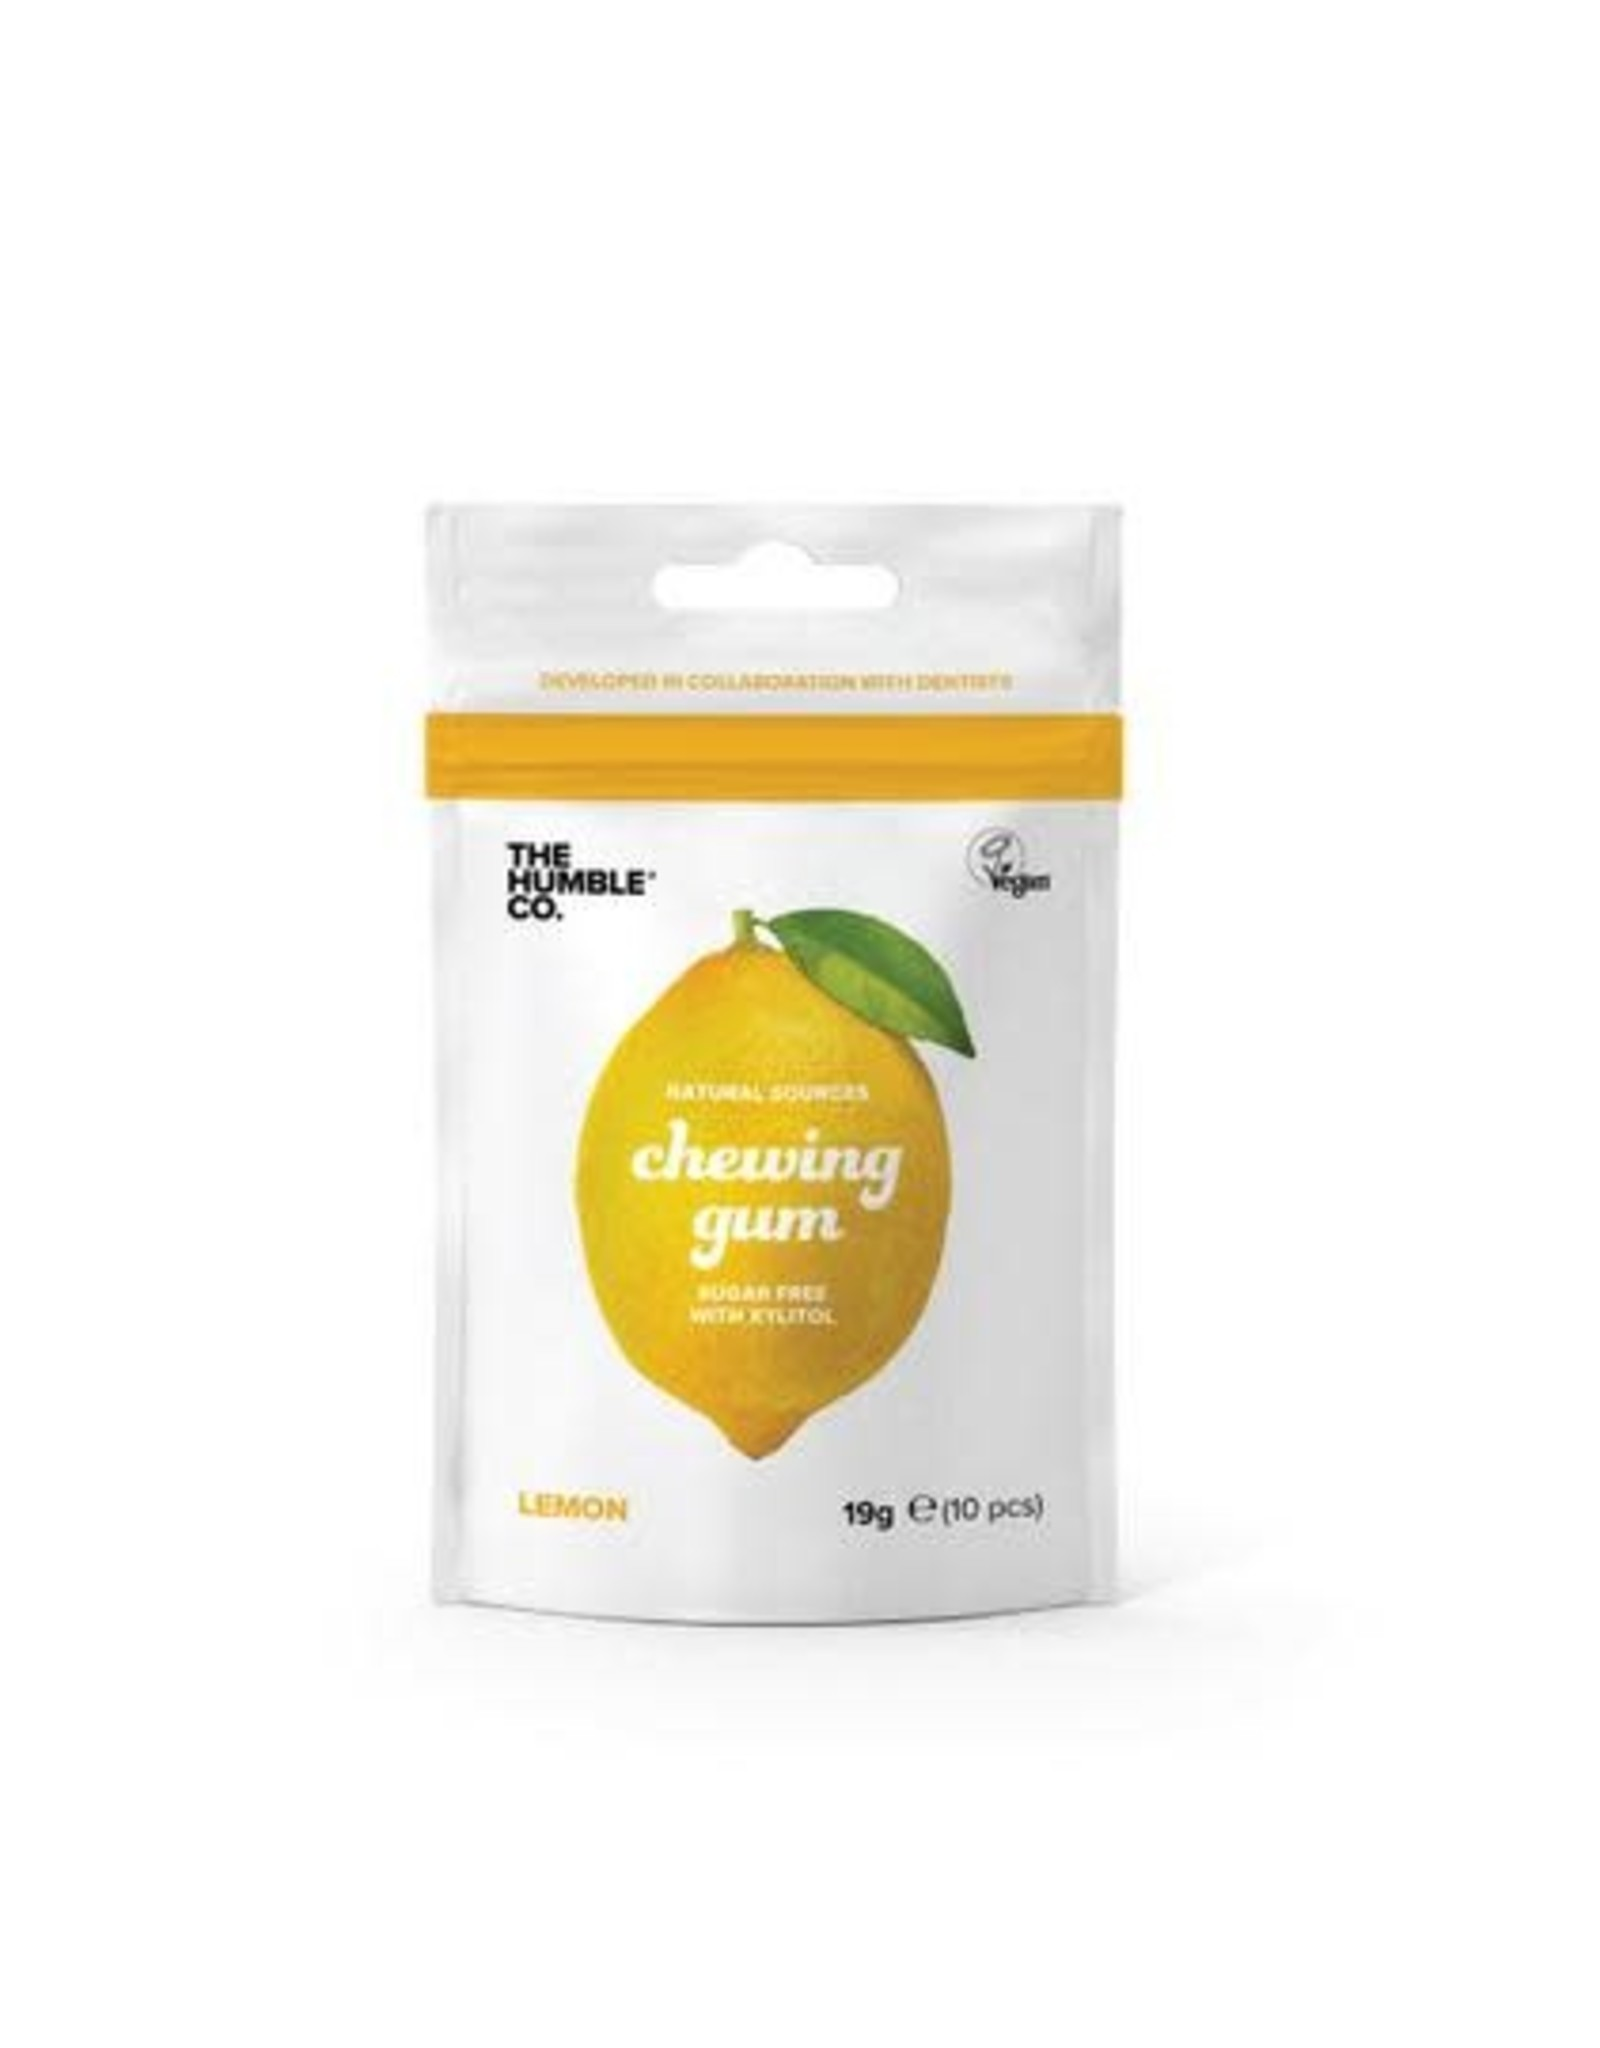 The Humble Co. Humble Chewing Gum sugar free Lemon 19g